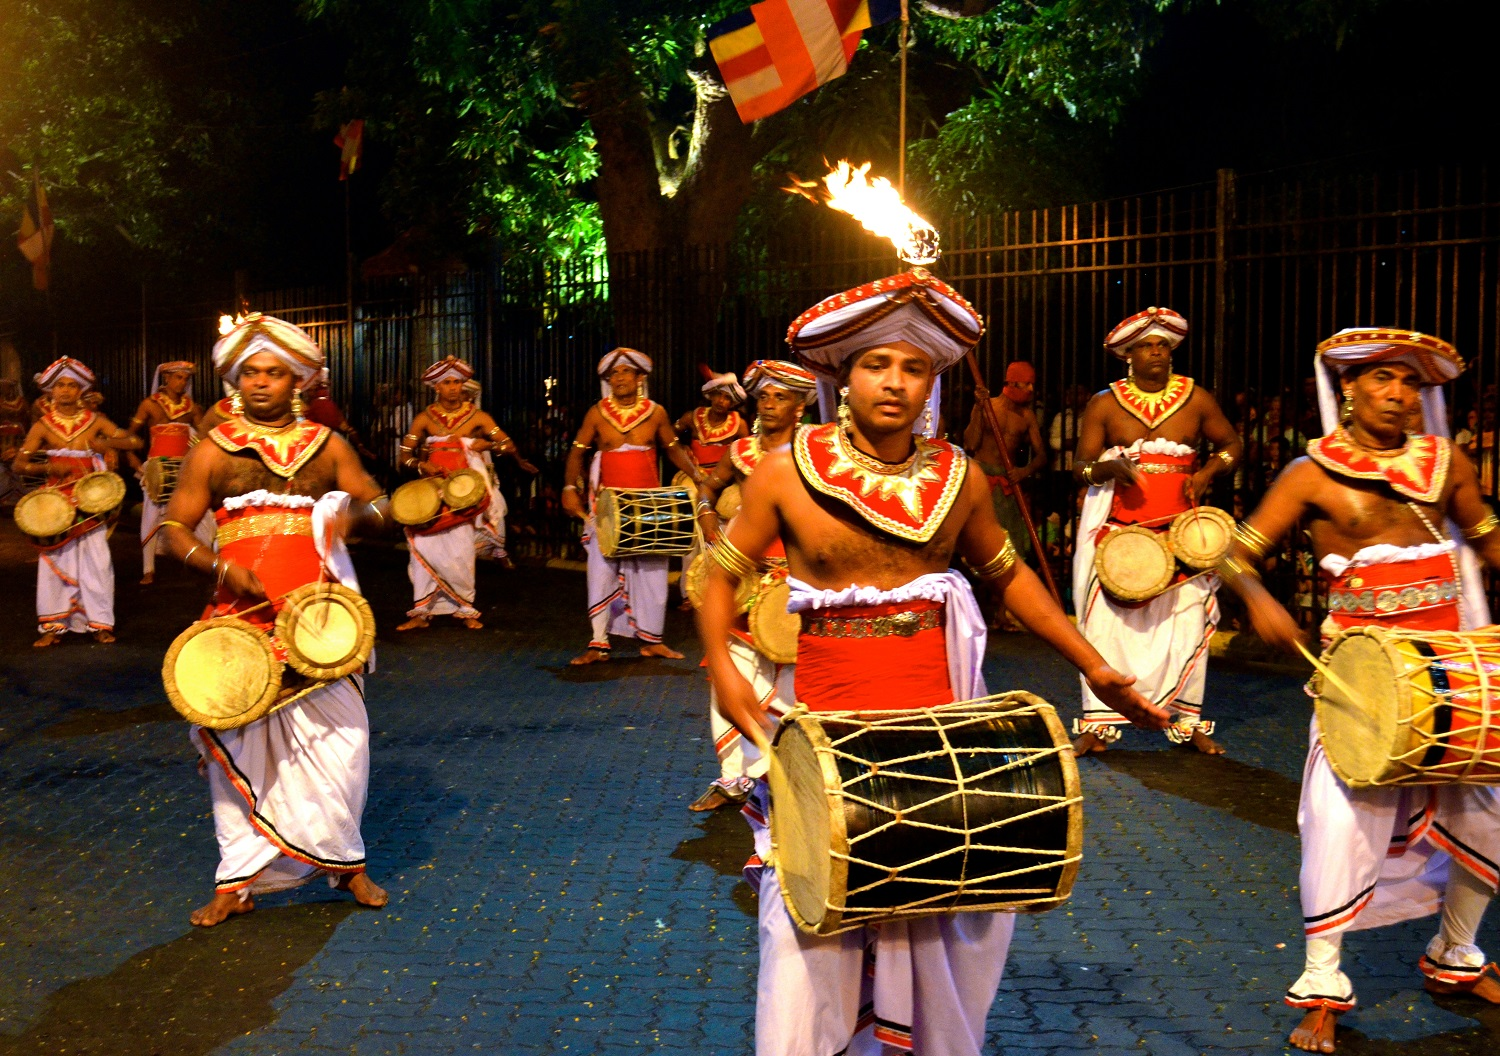 male performers on stage with drums